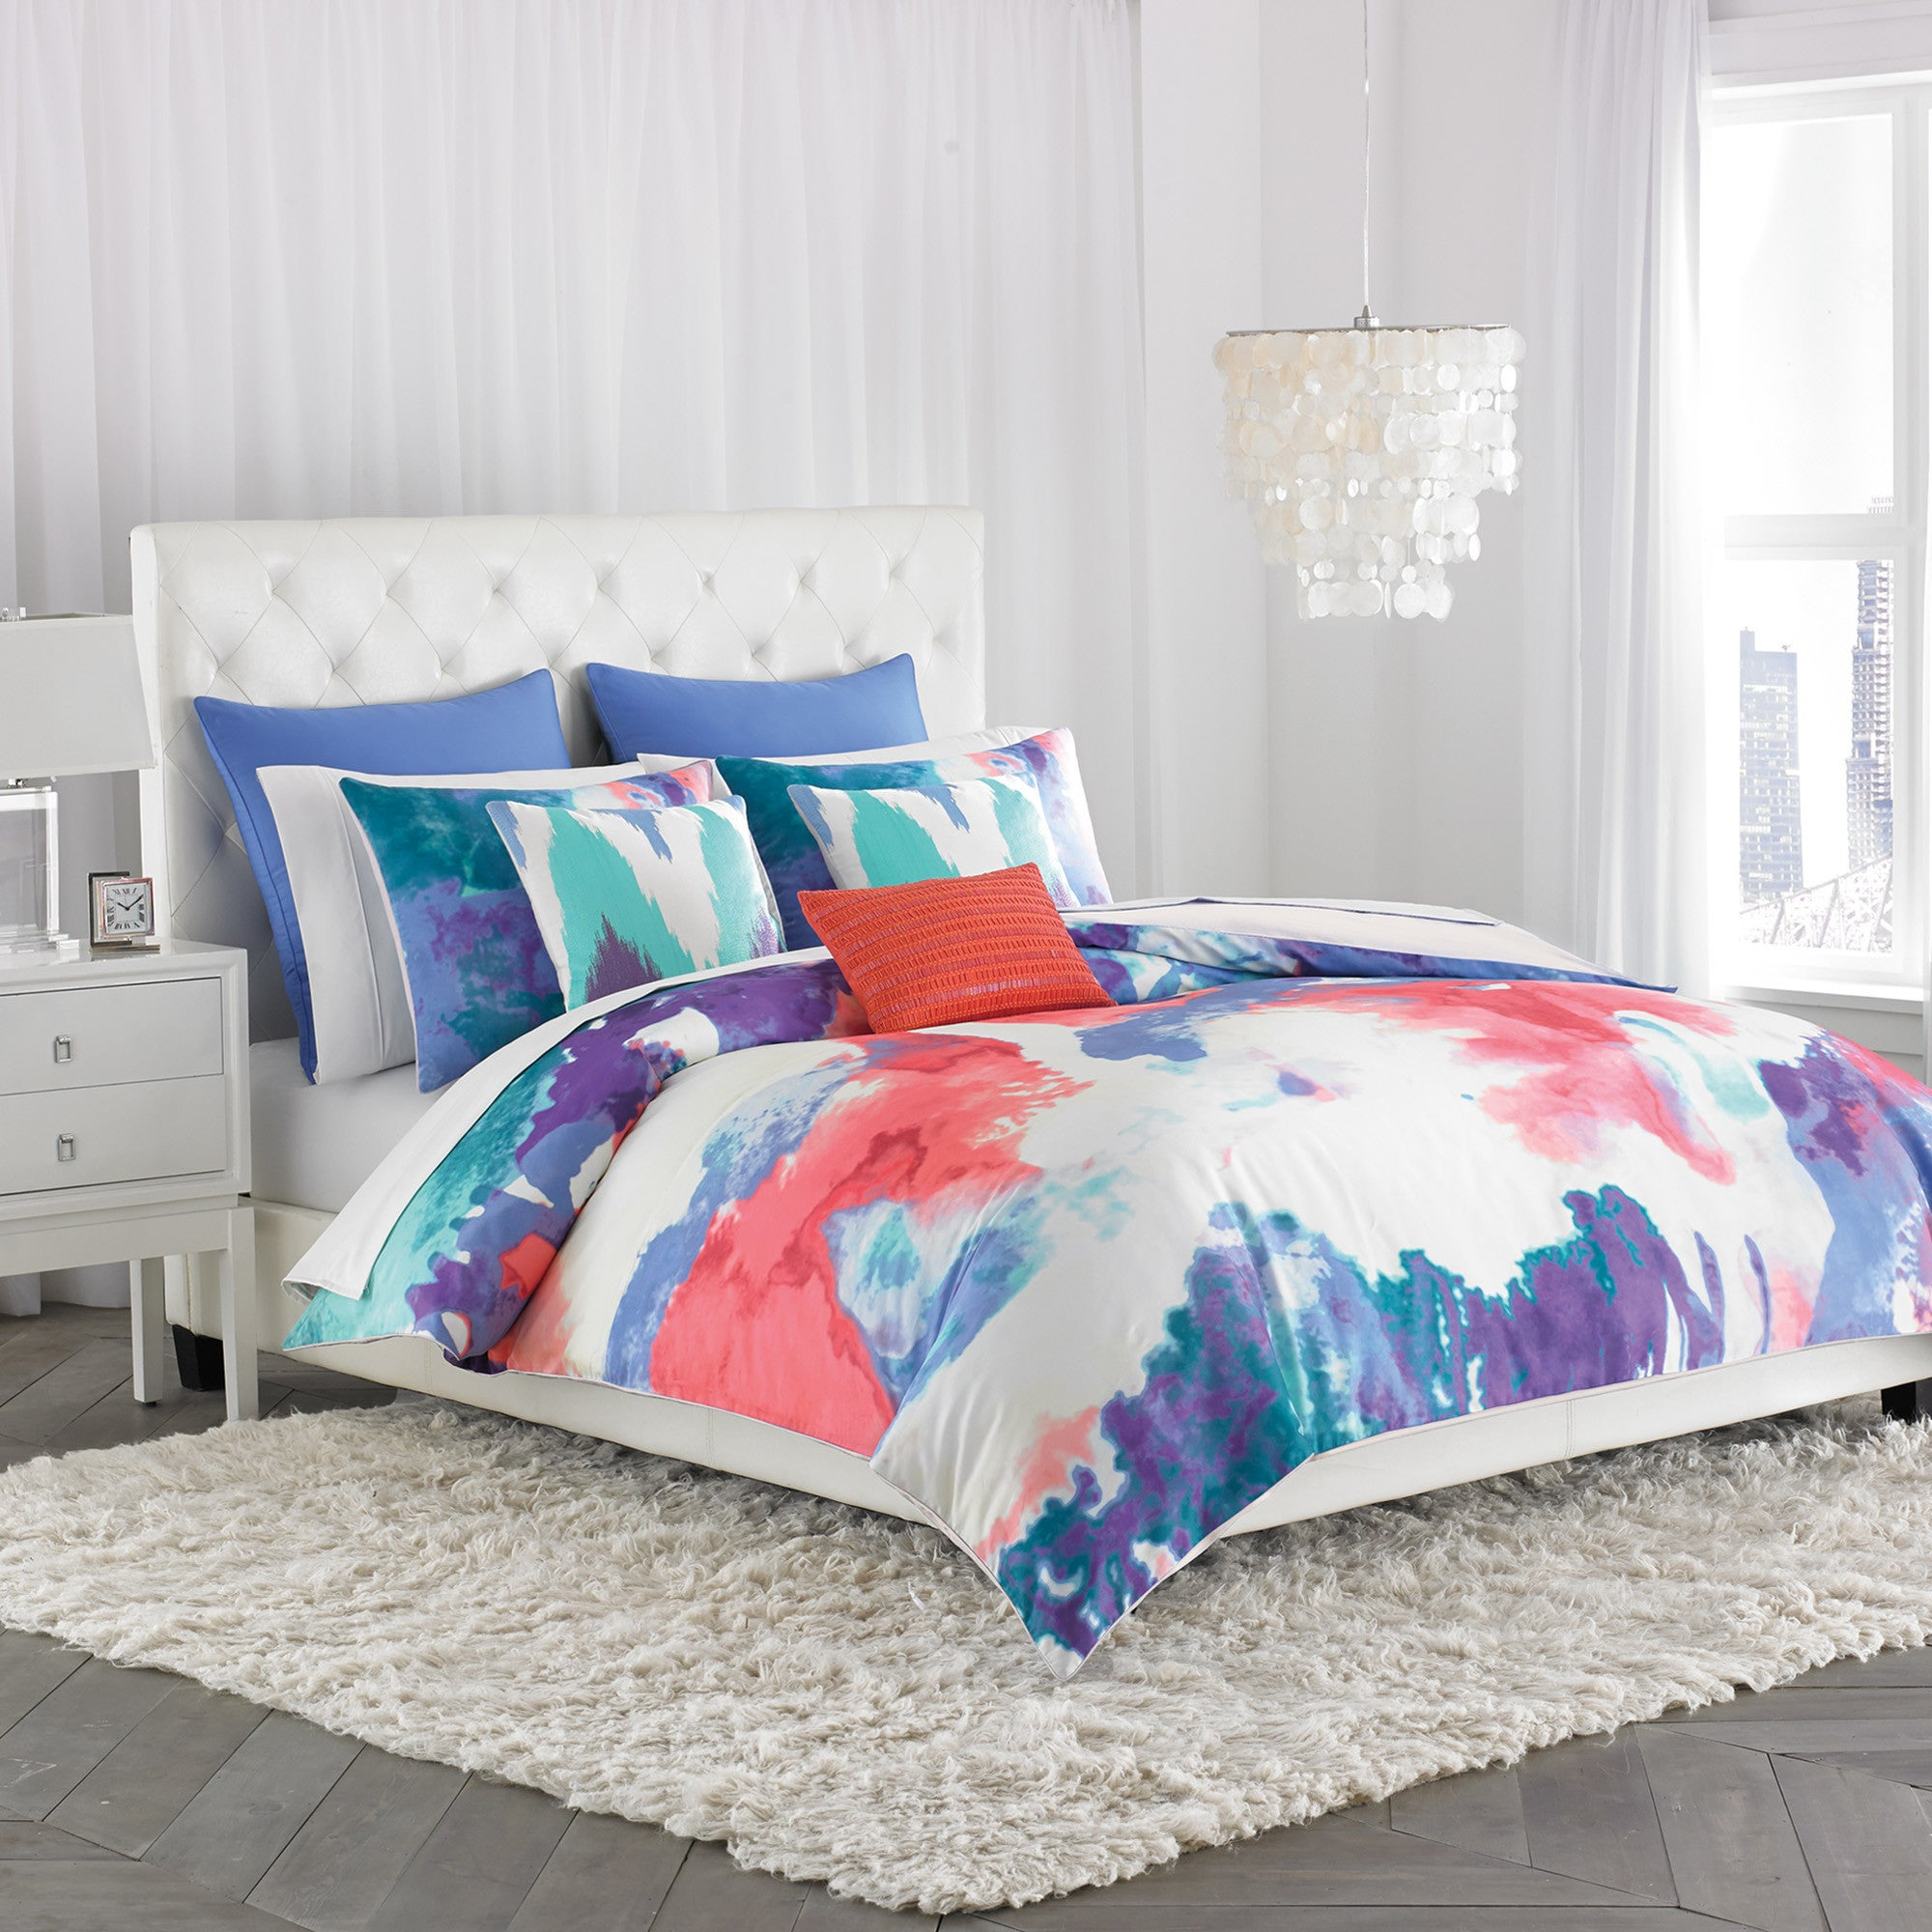 Shop Amy Sia Painterly Duvet Cover Free Shipping On